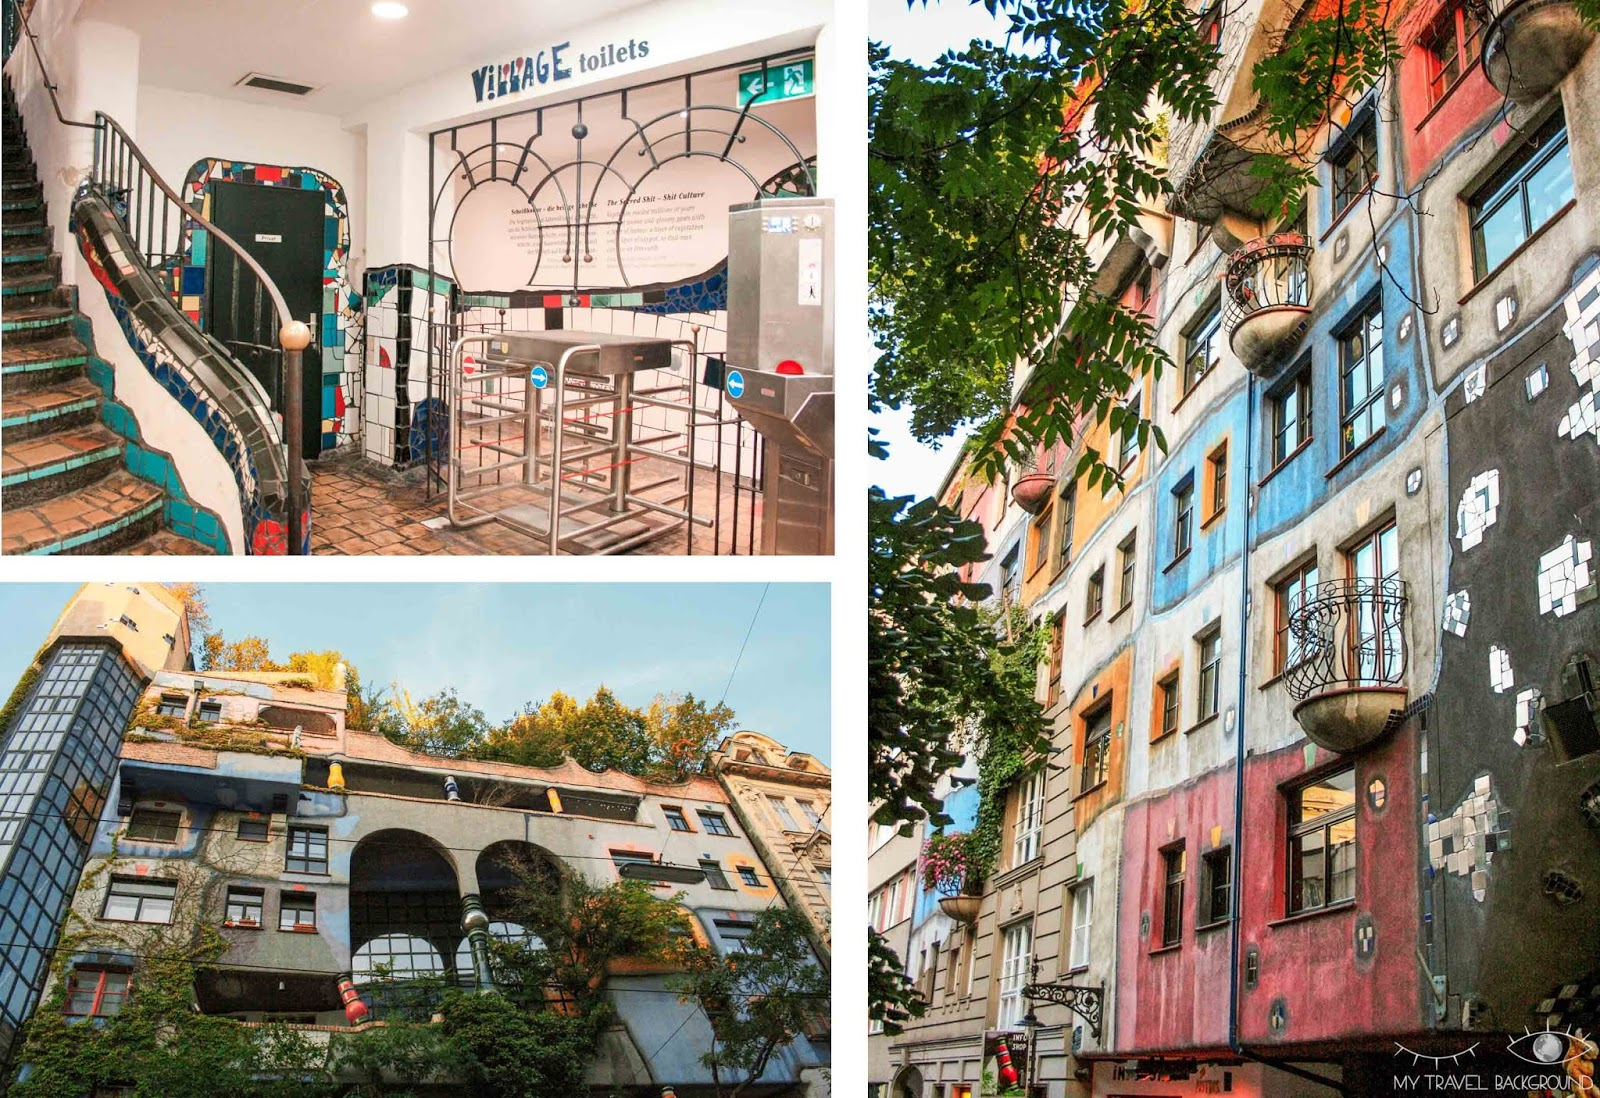 My Travel Background : visiter Vienne, la capitale de l'Autriche, en 3 jours - Hundertwasserhaus